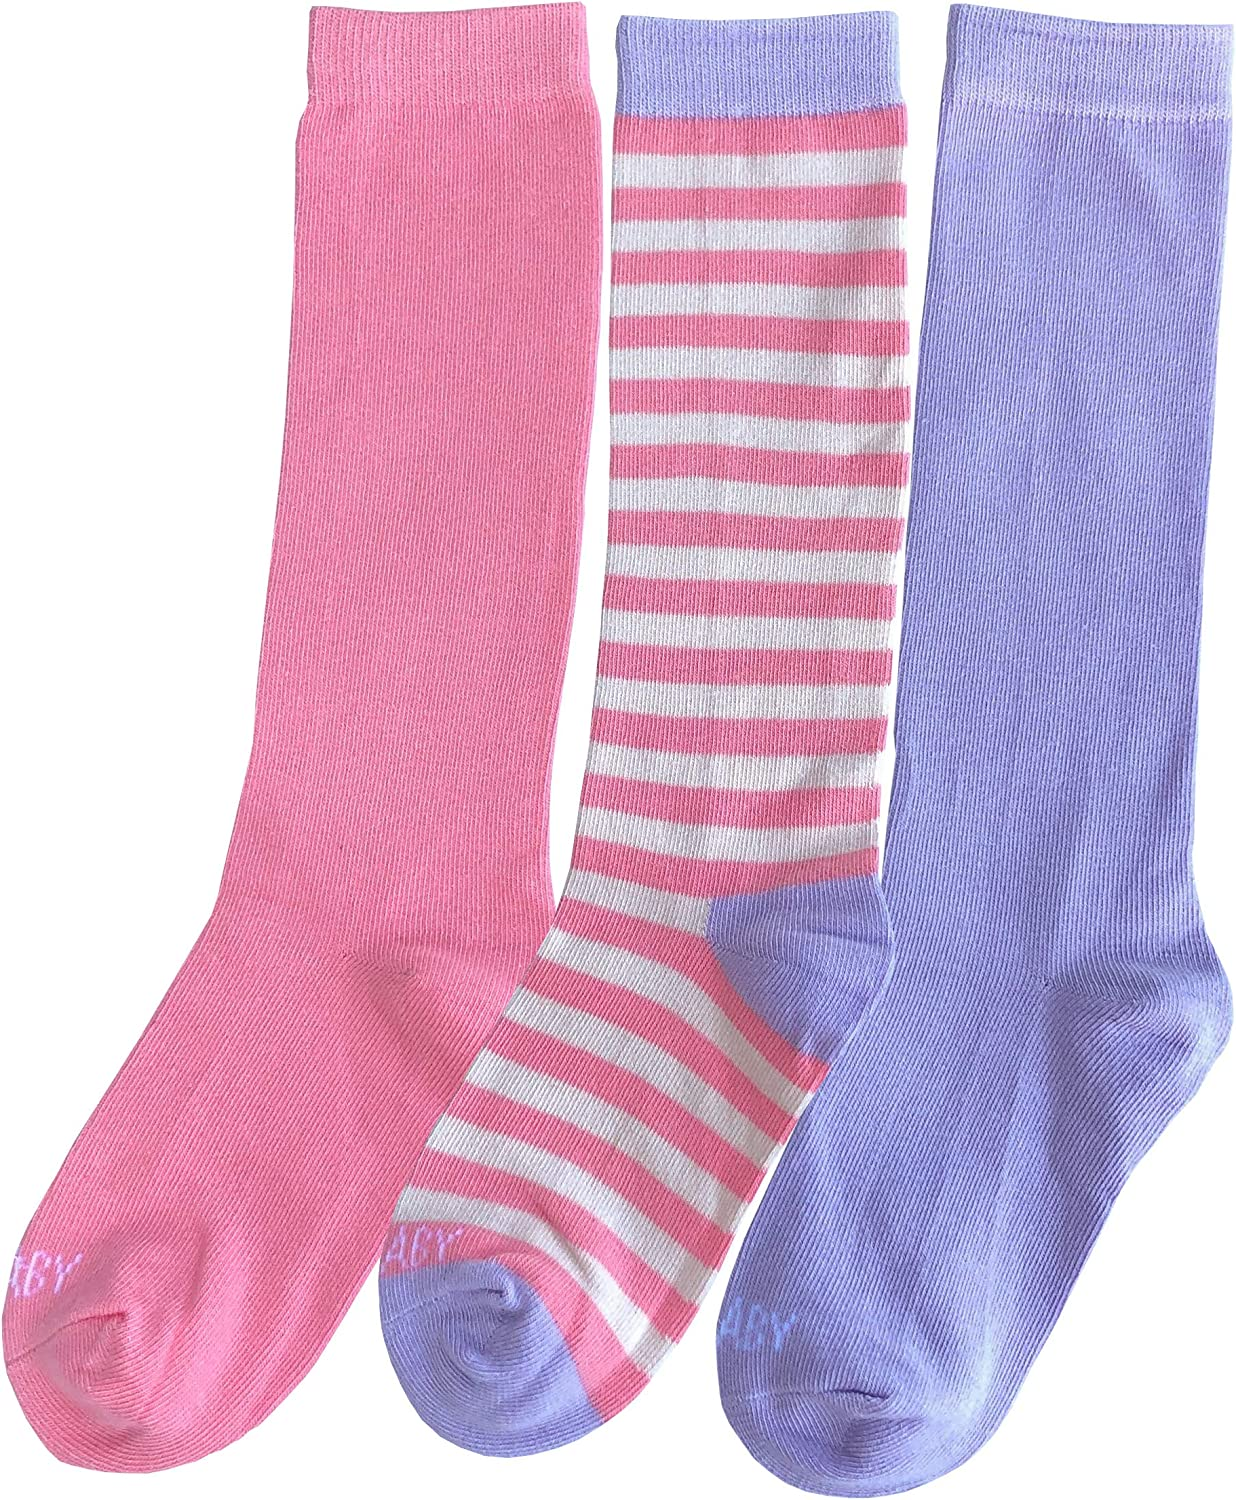 AFO Baby Socks, Knee High - LIMITED EDITION COLOR PACKS, Ideal for Pediatric AFOs, SMOs and Foot Braces